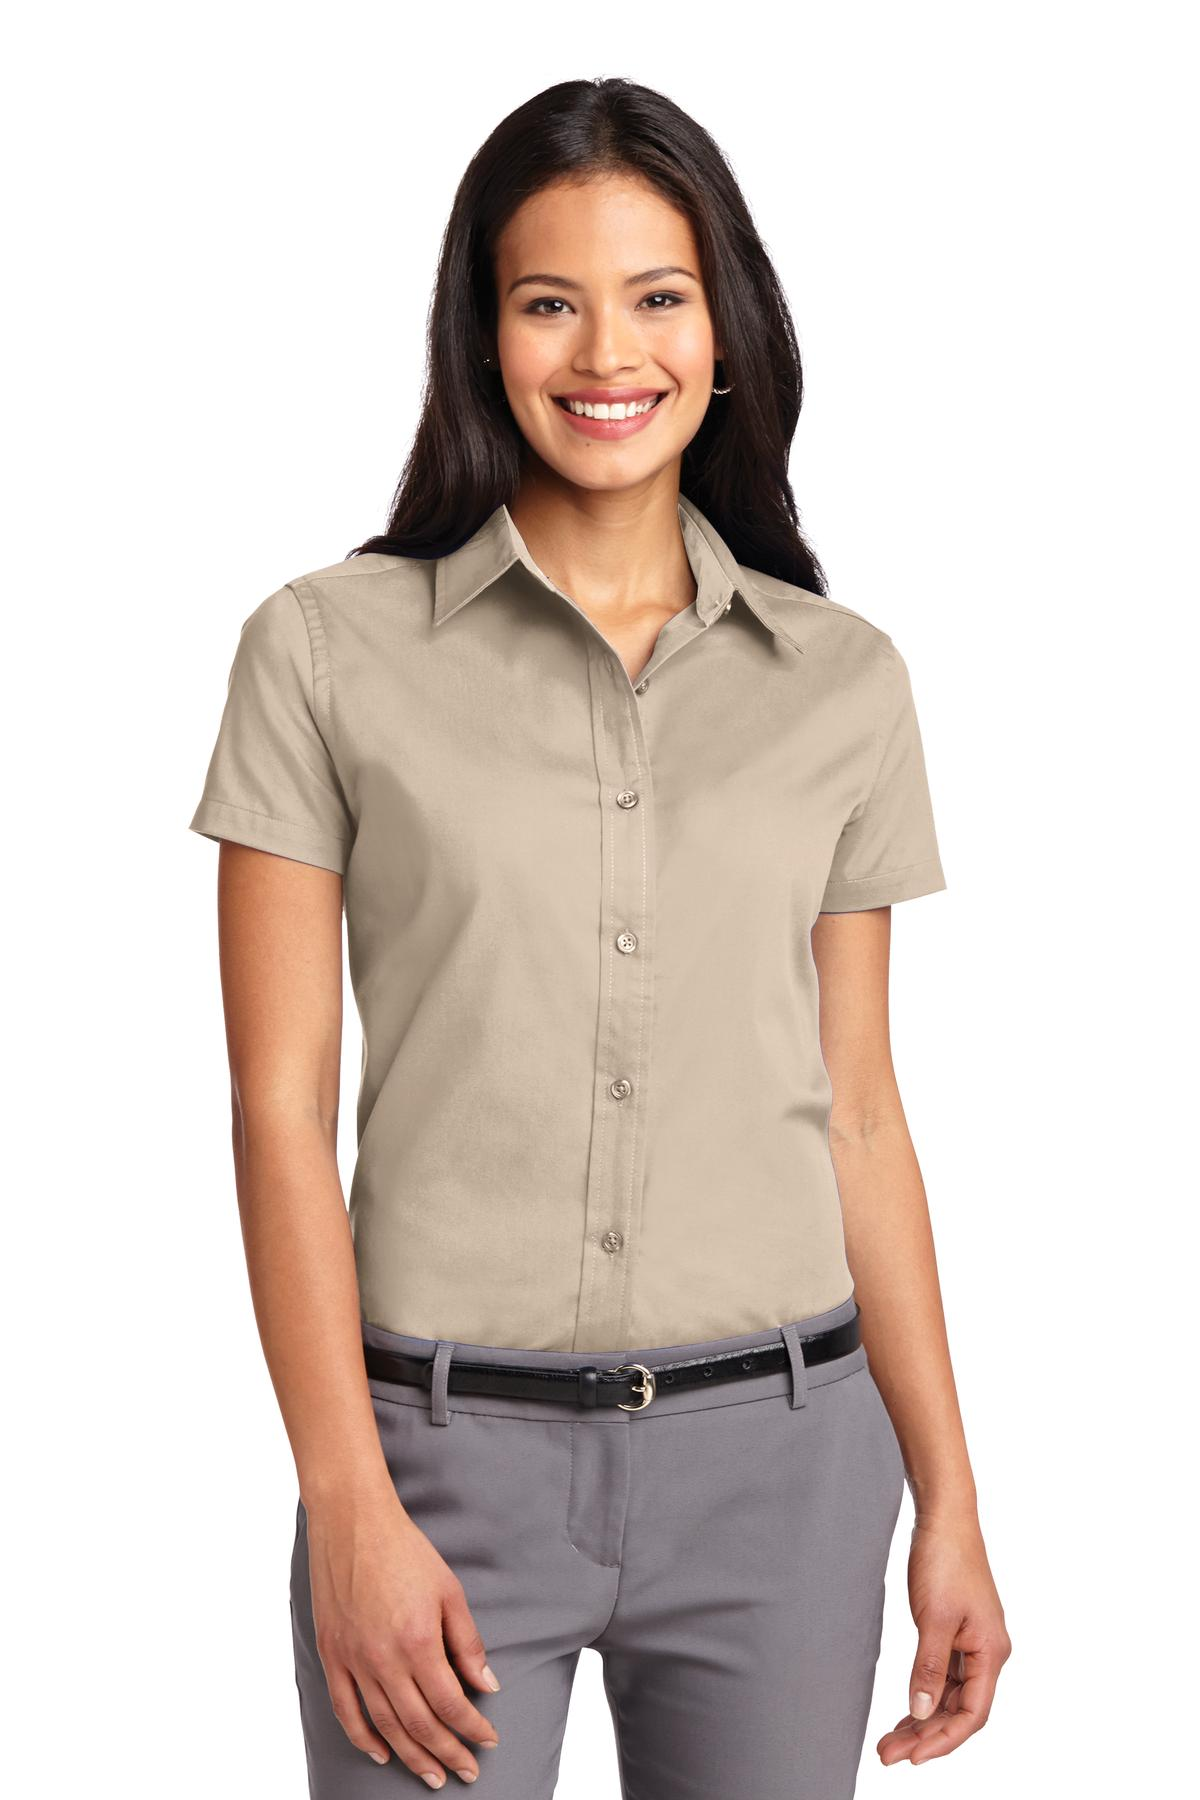 Port Authority ®  Ladies Short Sleeve Easy Care  Shirt.  L508 - Stone